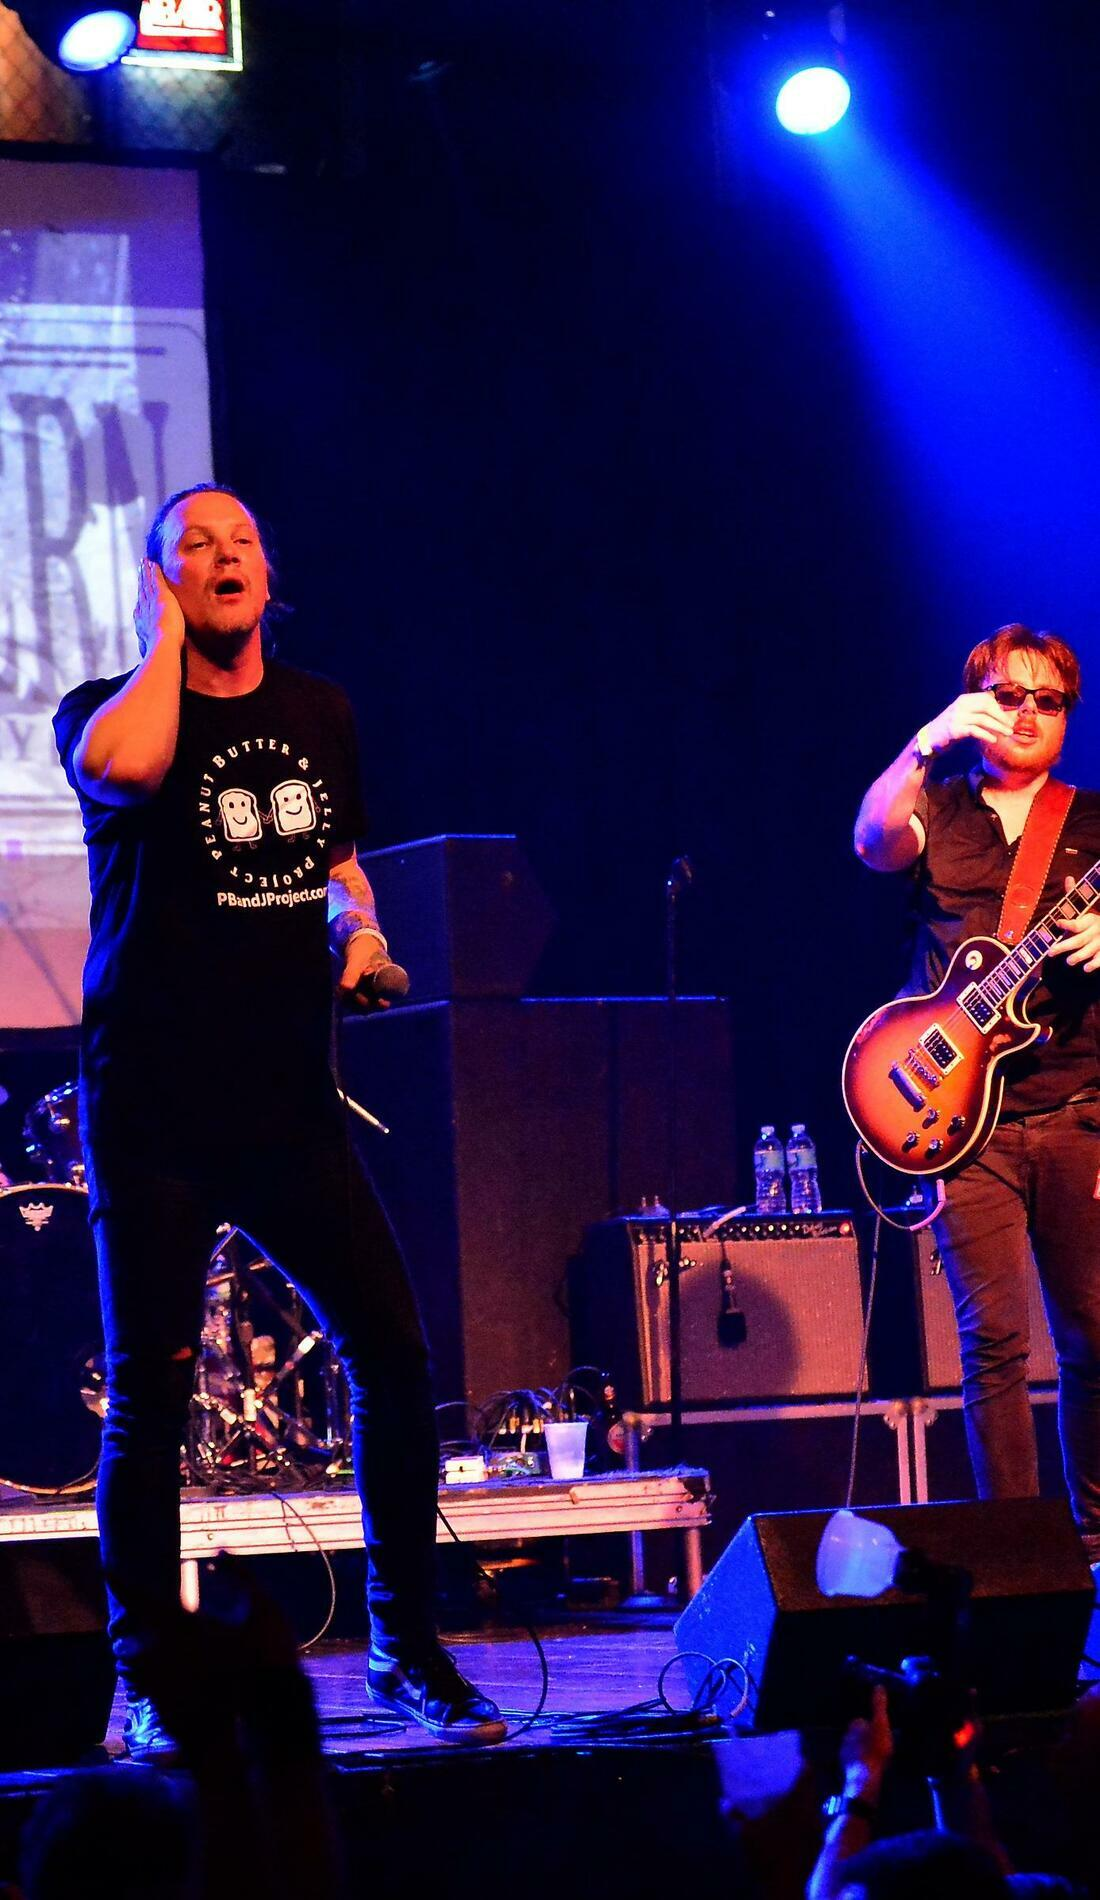 A Candlebox live event